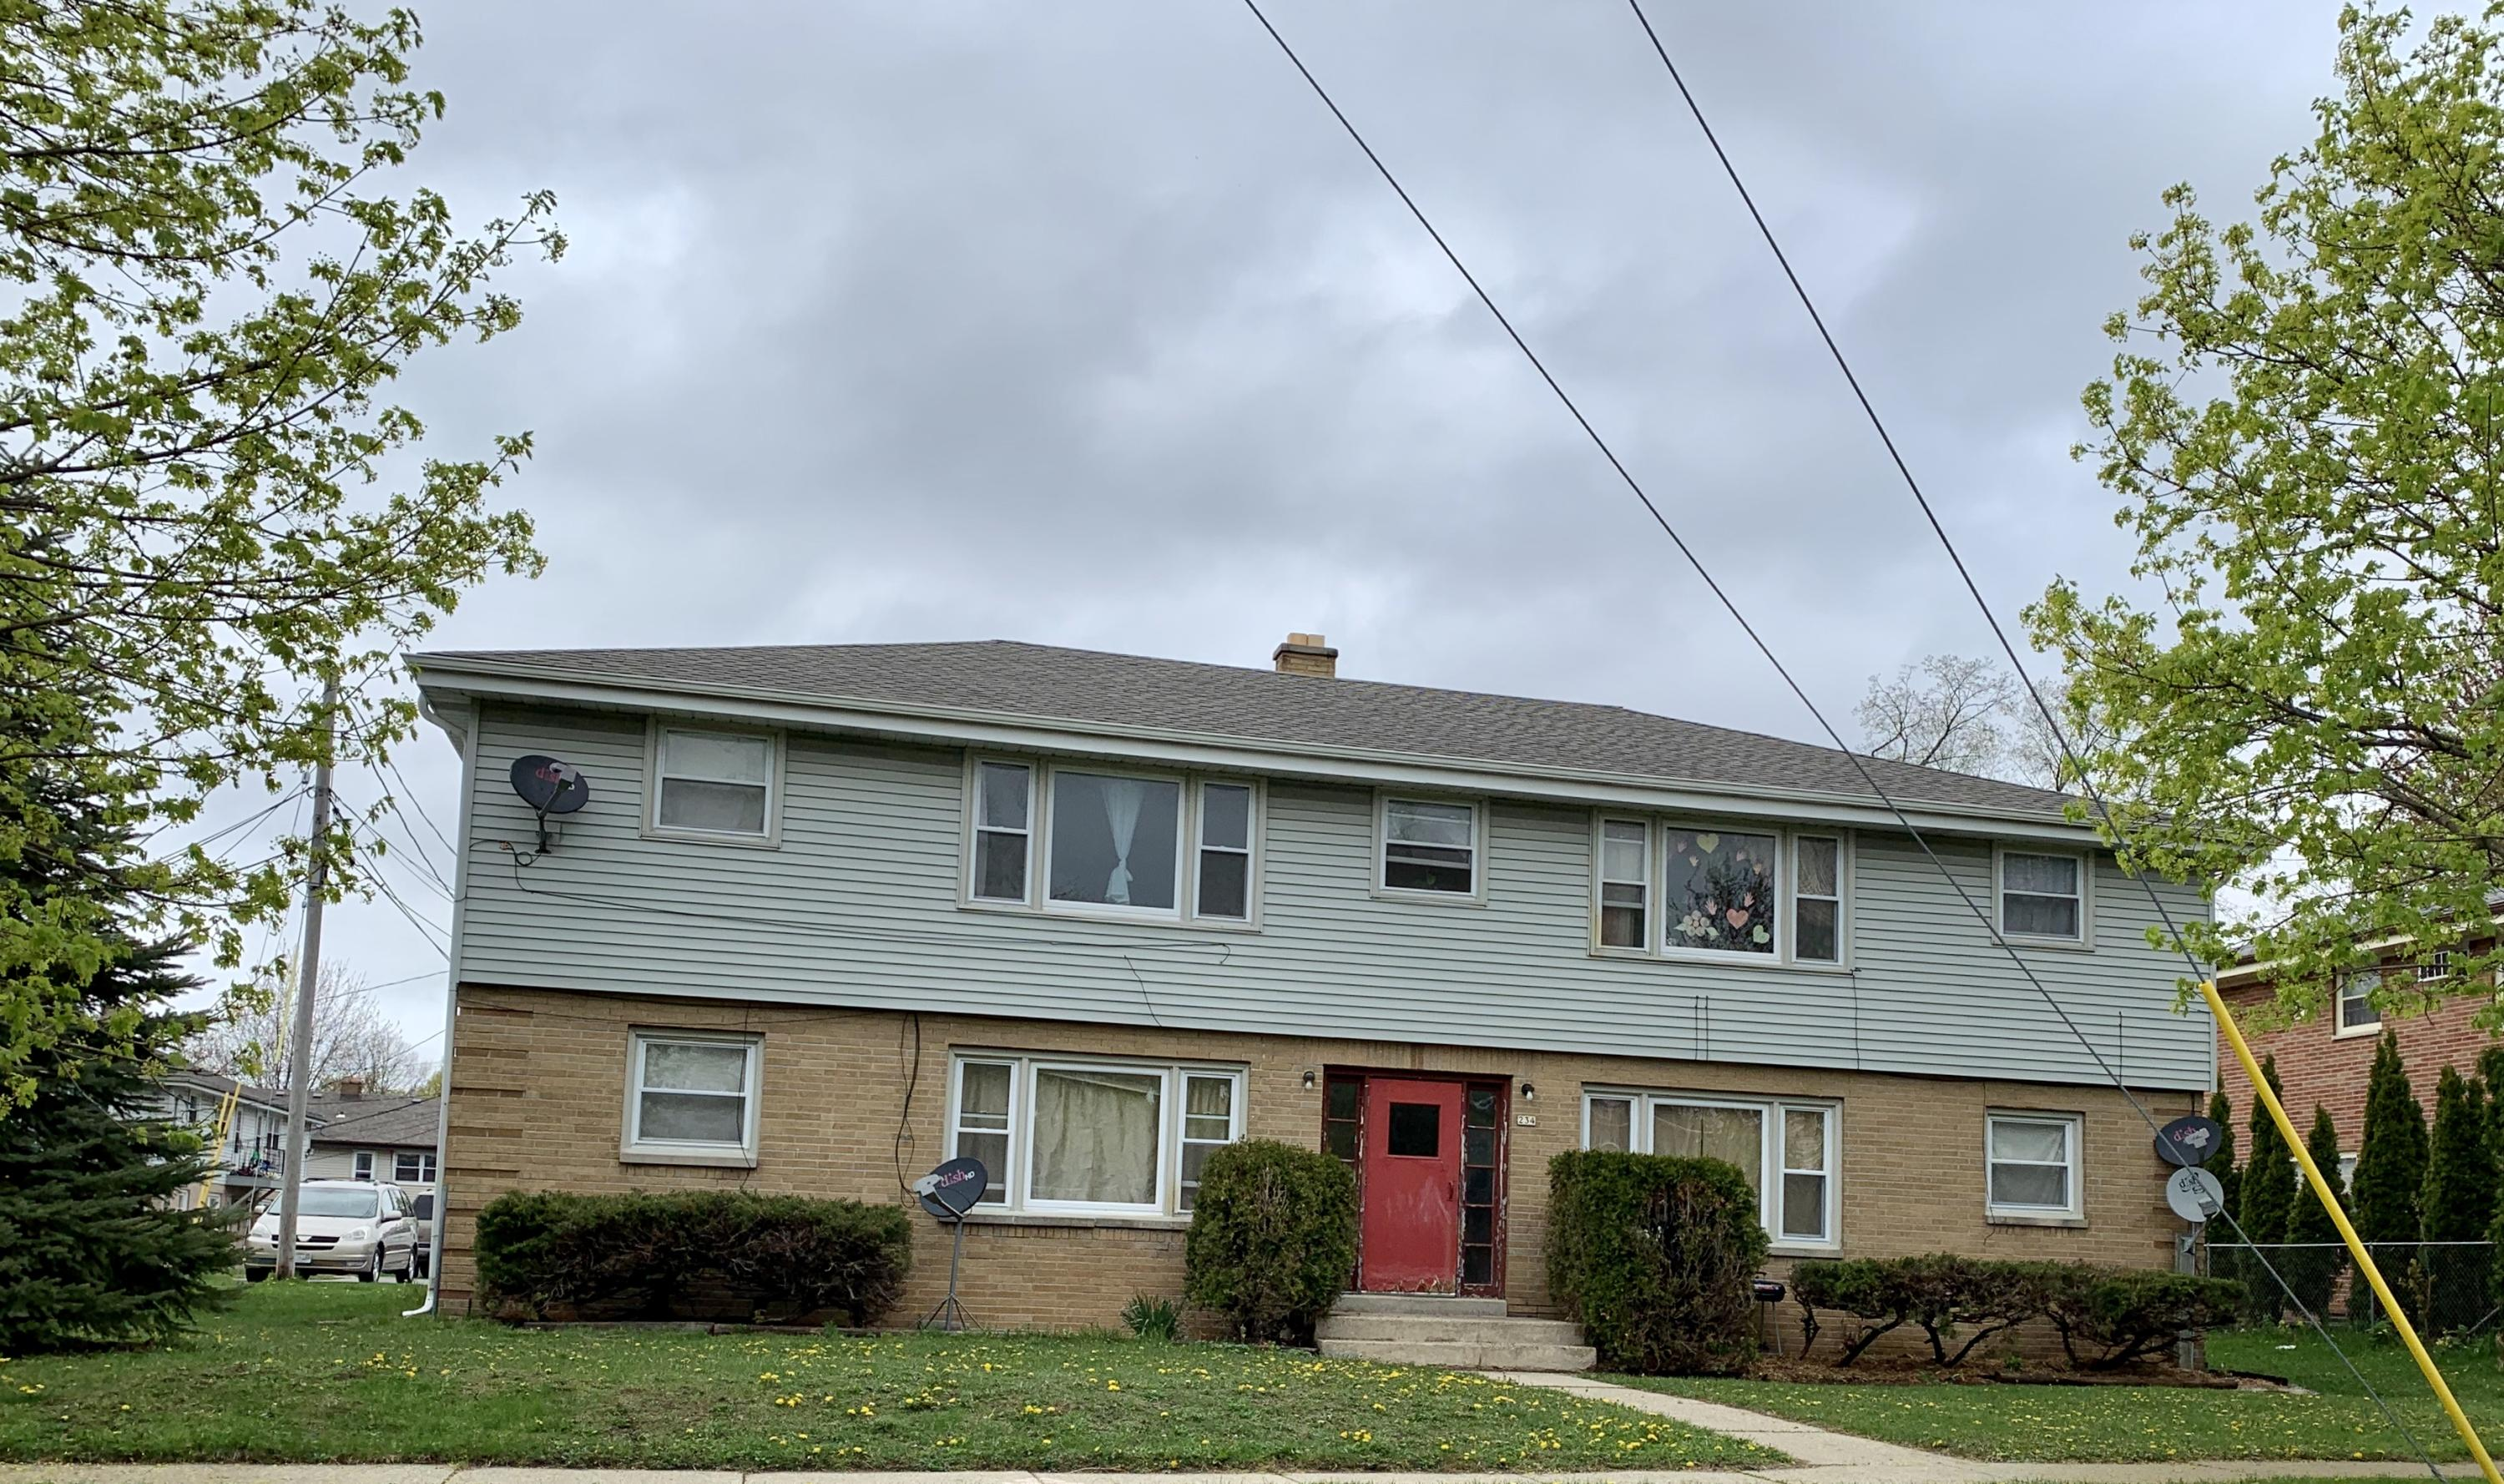 234 Newhall Ave, Waukesha, Wisconsin 53188, ,Multi-Family Investment,For Sale,Newhall Ave,1689064